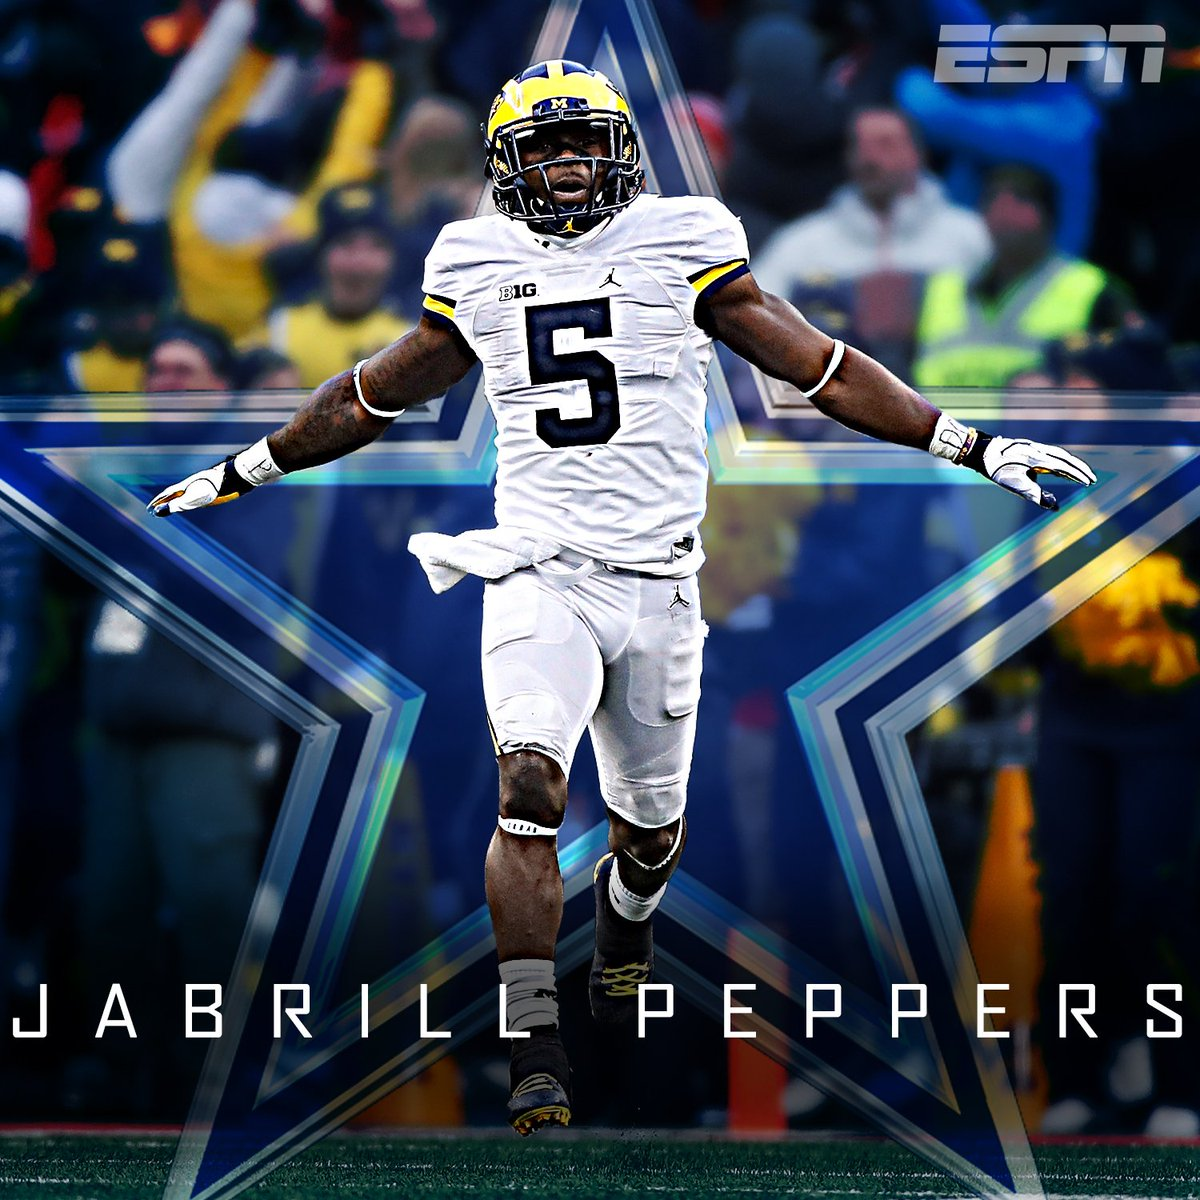 According to Kiper's latest mock draft, the first player the Cowboys t...